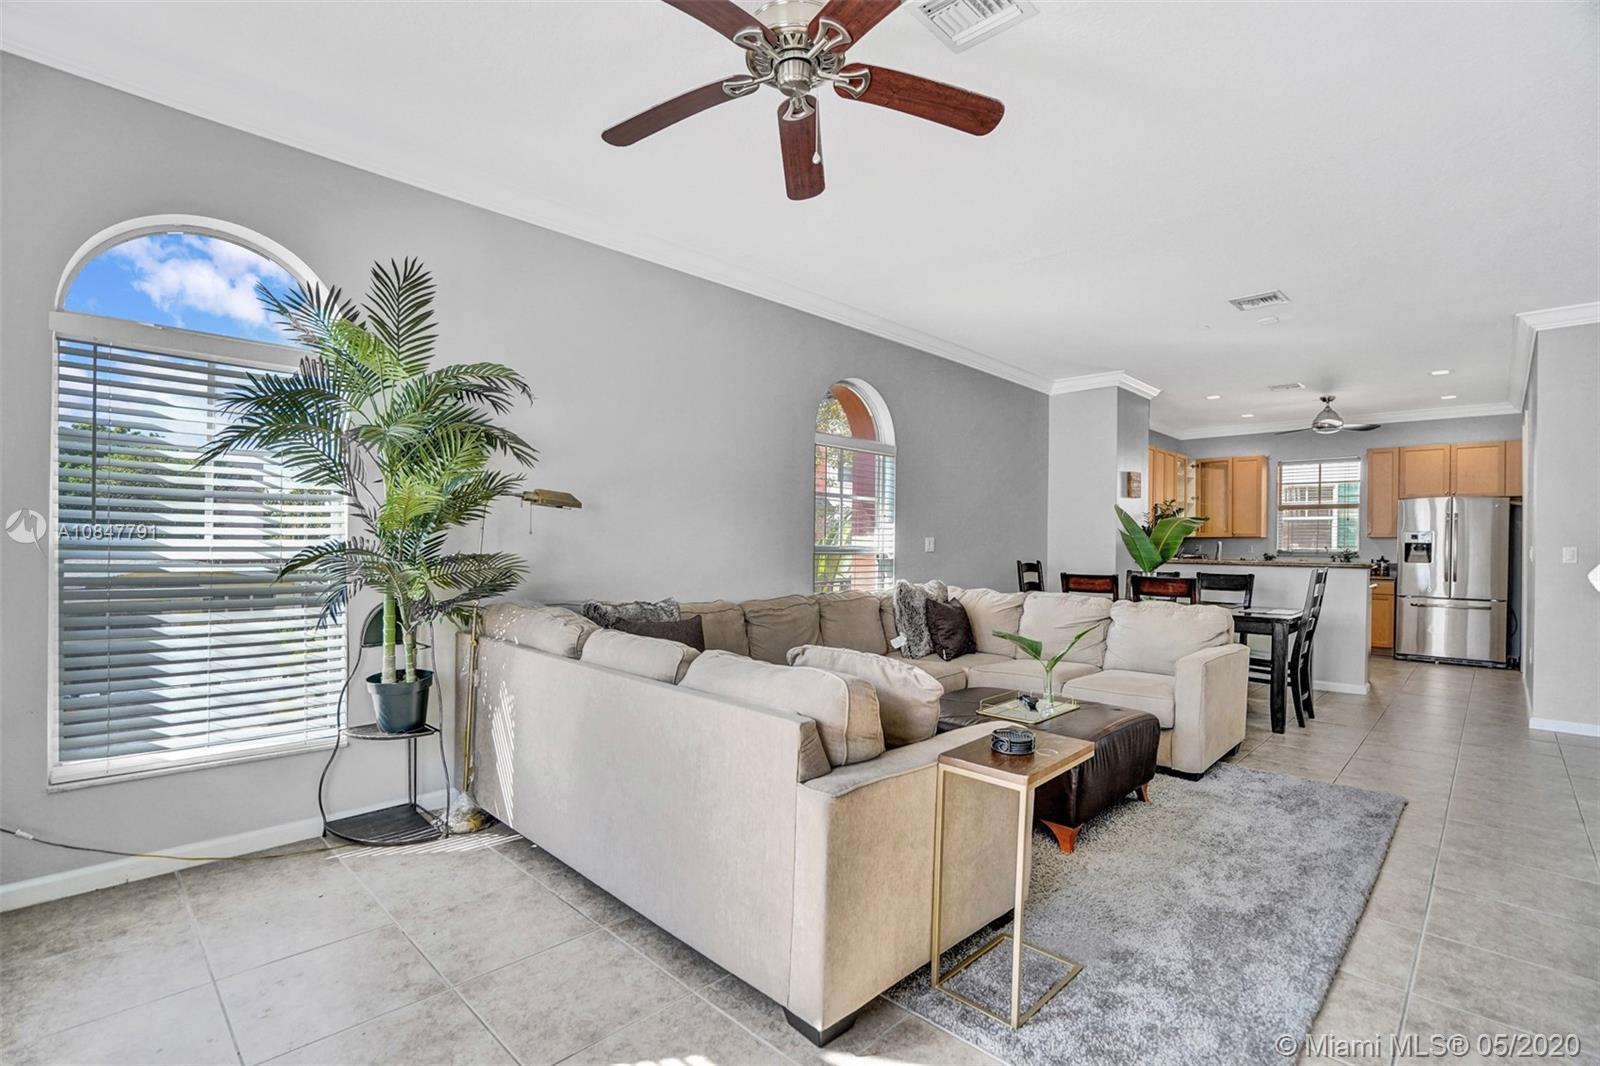 Magnificently 3 Story, Pet Friendly Townhouse in convenient East Fort Lauderdale location! Gated, se